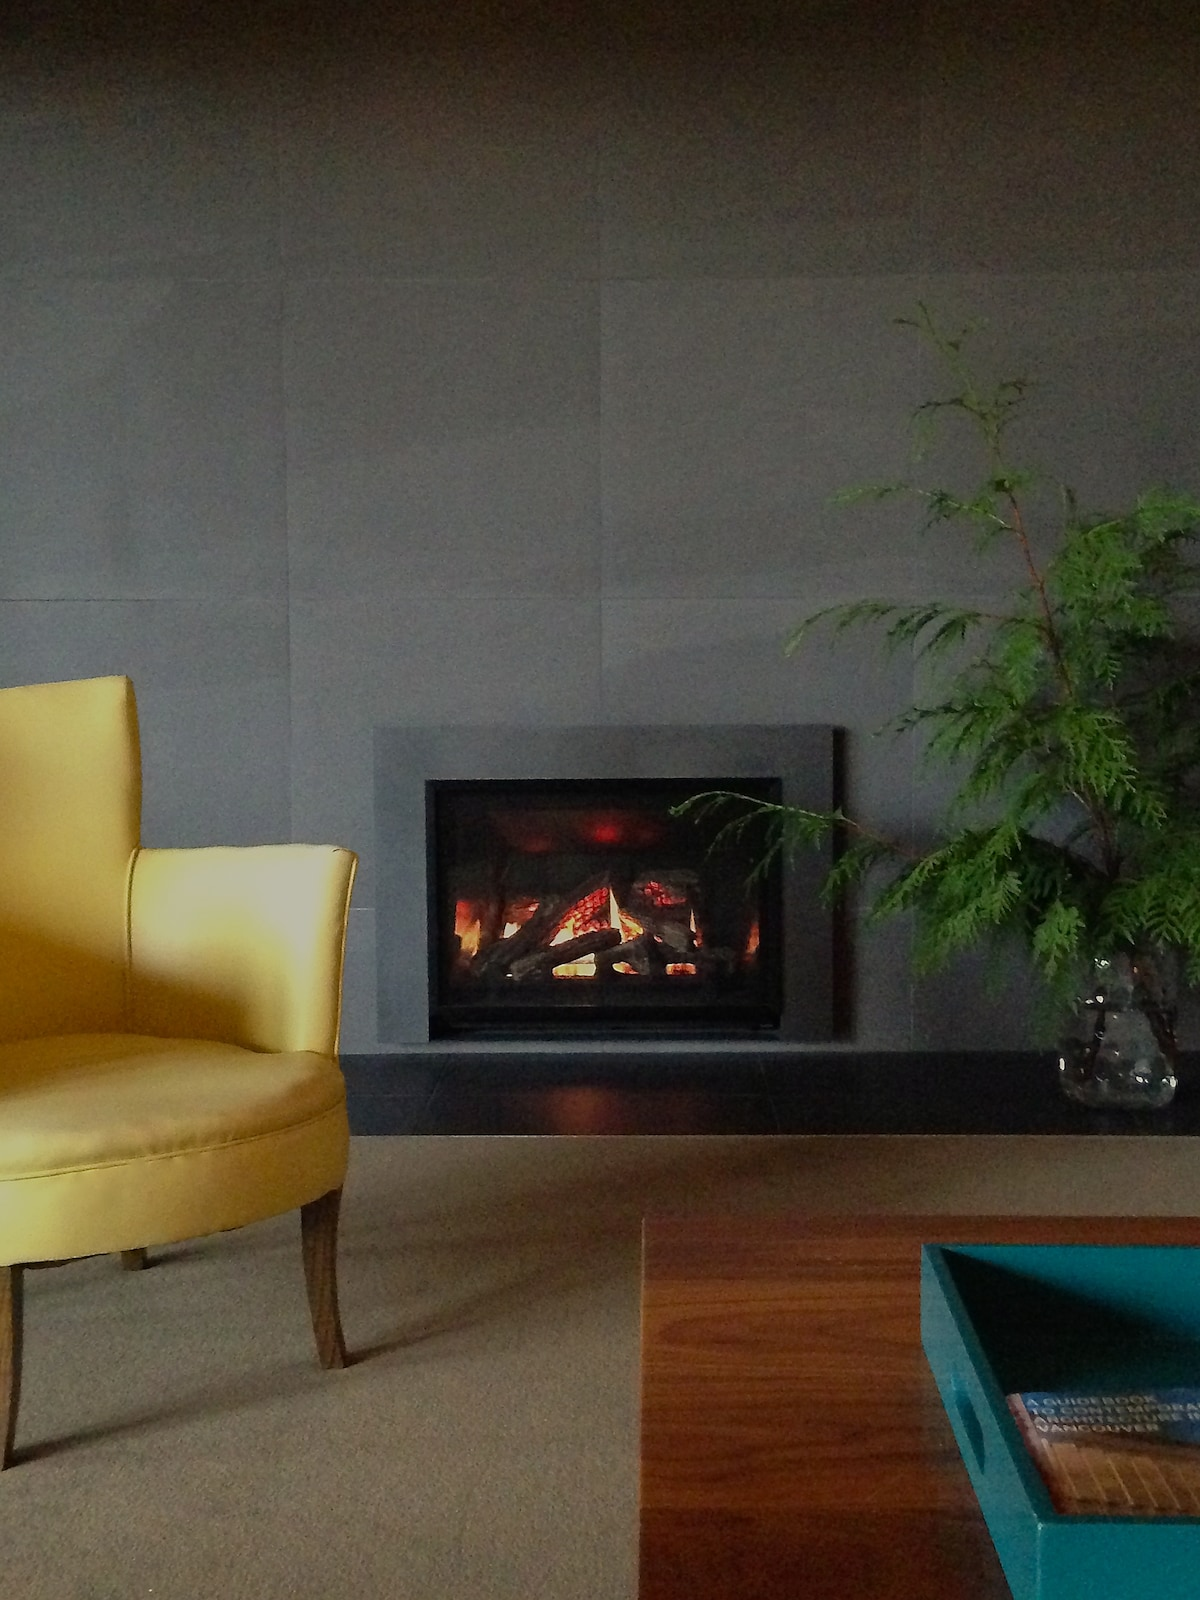 remote control gas fireplace on a porcelain tile wall.